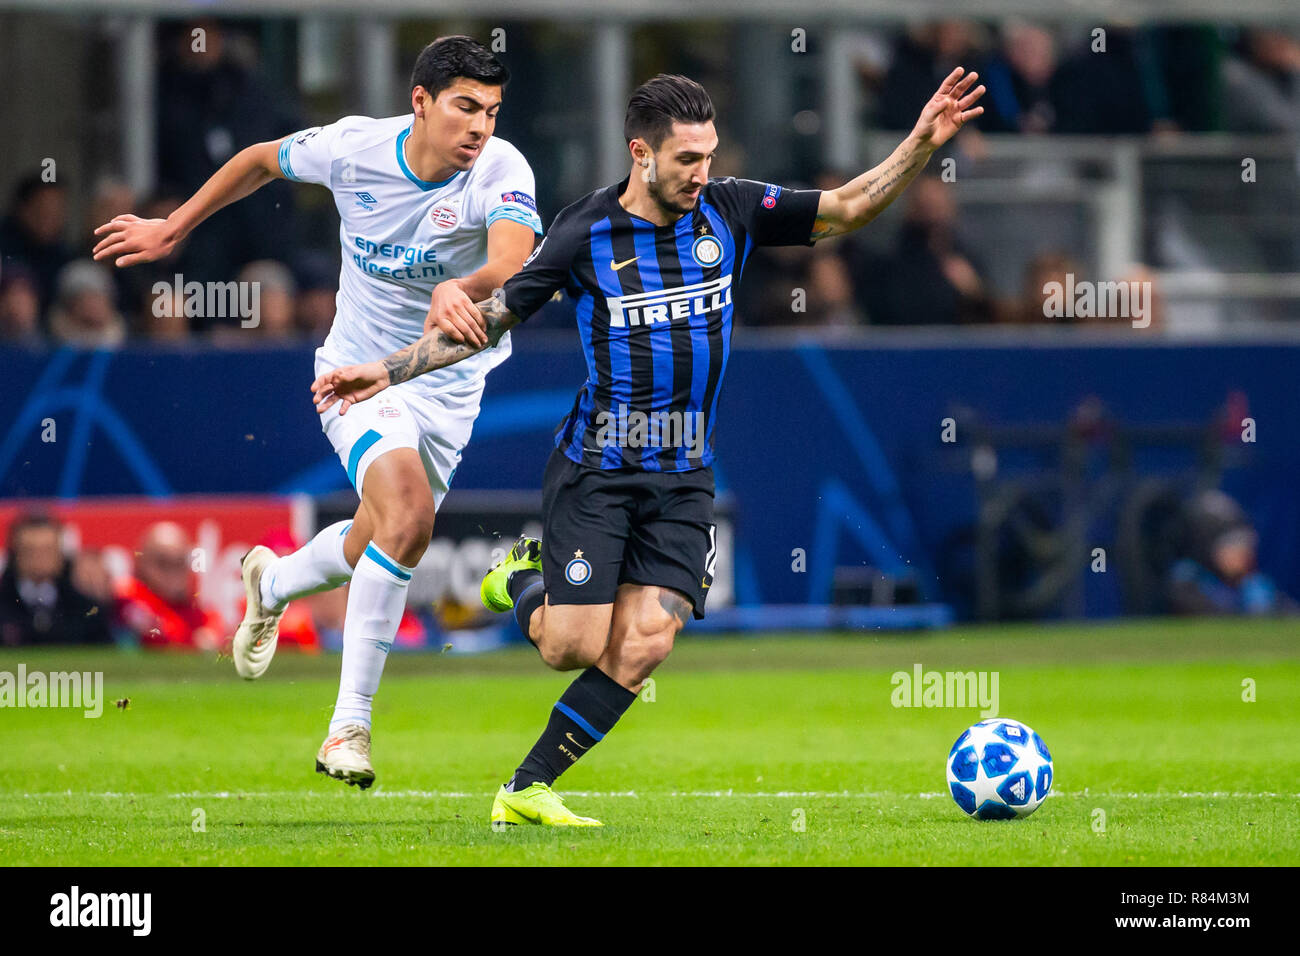 Milano, Italy. 11th Dec, 2018. Matteo Politano of Inter and Erick Gutierrez of PSV Eindhoven during the UEFA Champions League Group B football match between Inter and PSV Eindhoven Credit: Alessio Morgese/Pacific Press/Alamy Live News - Stock Image